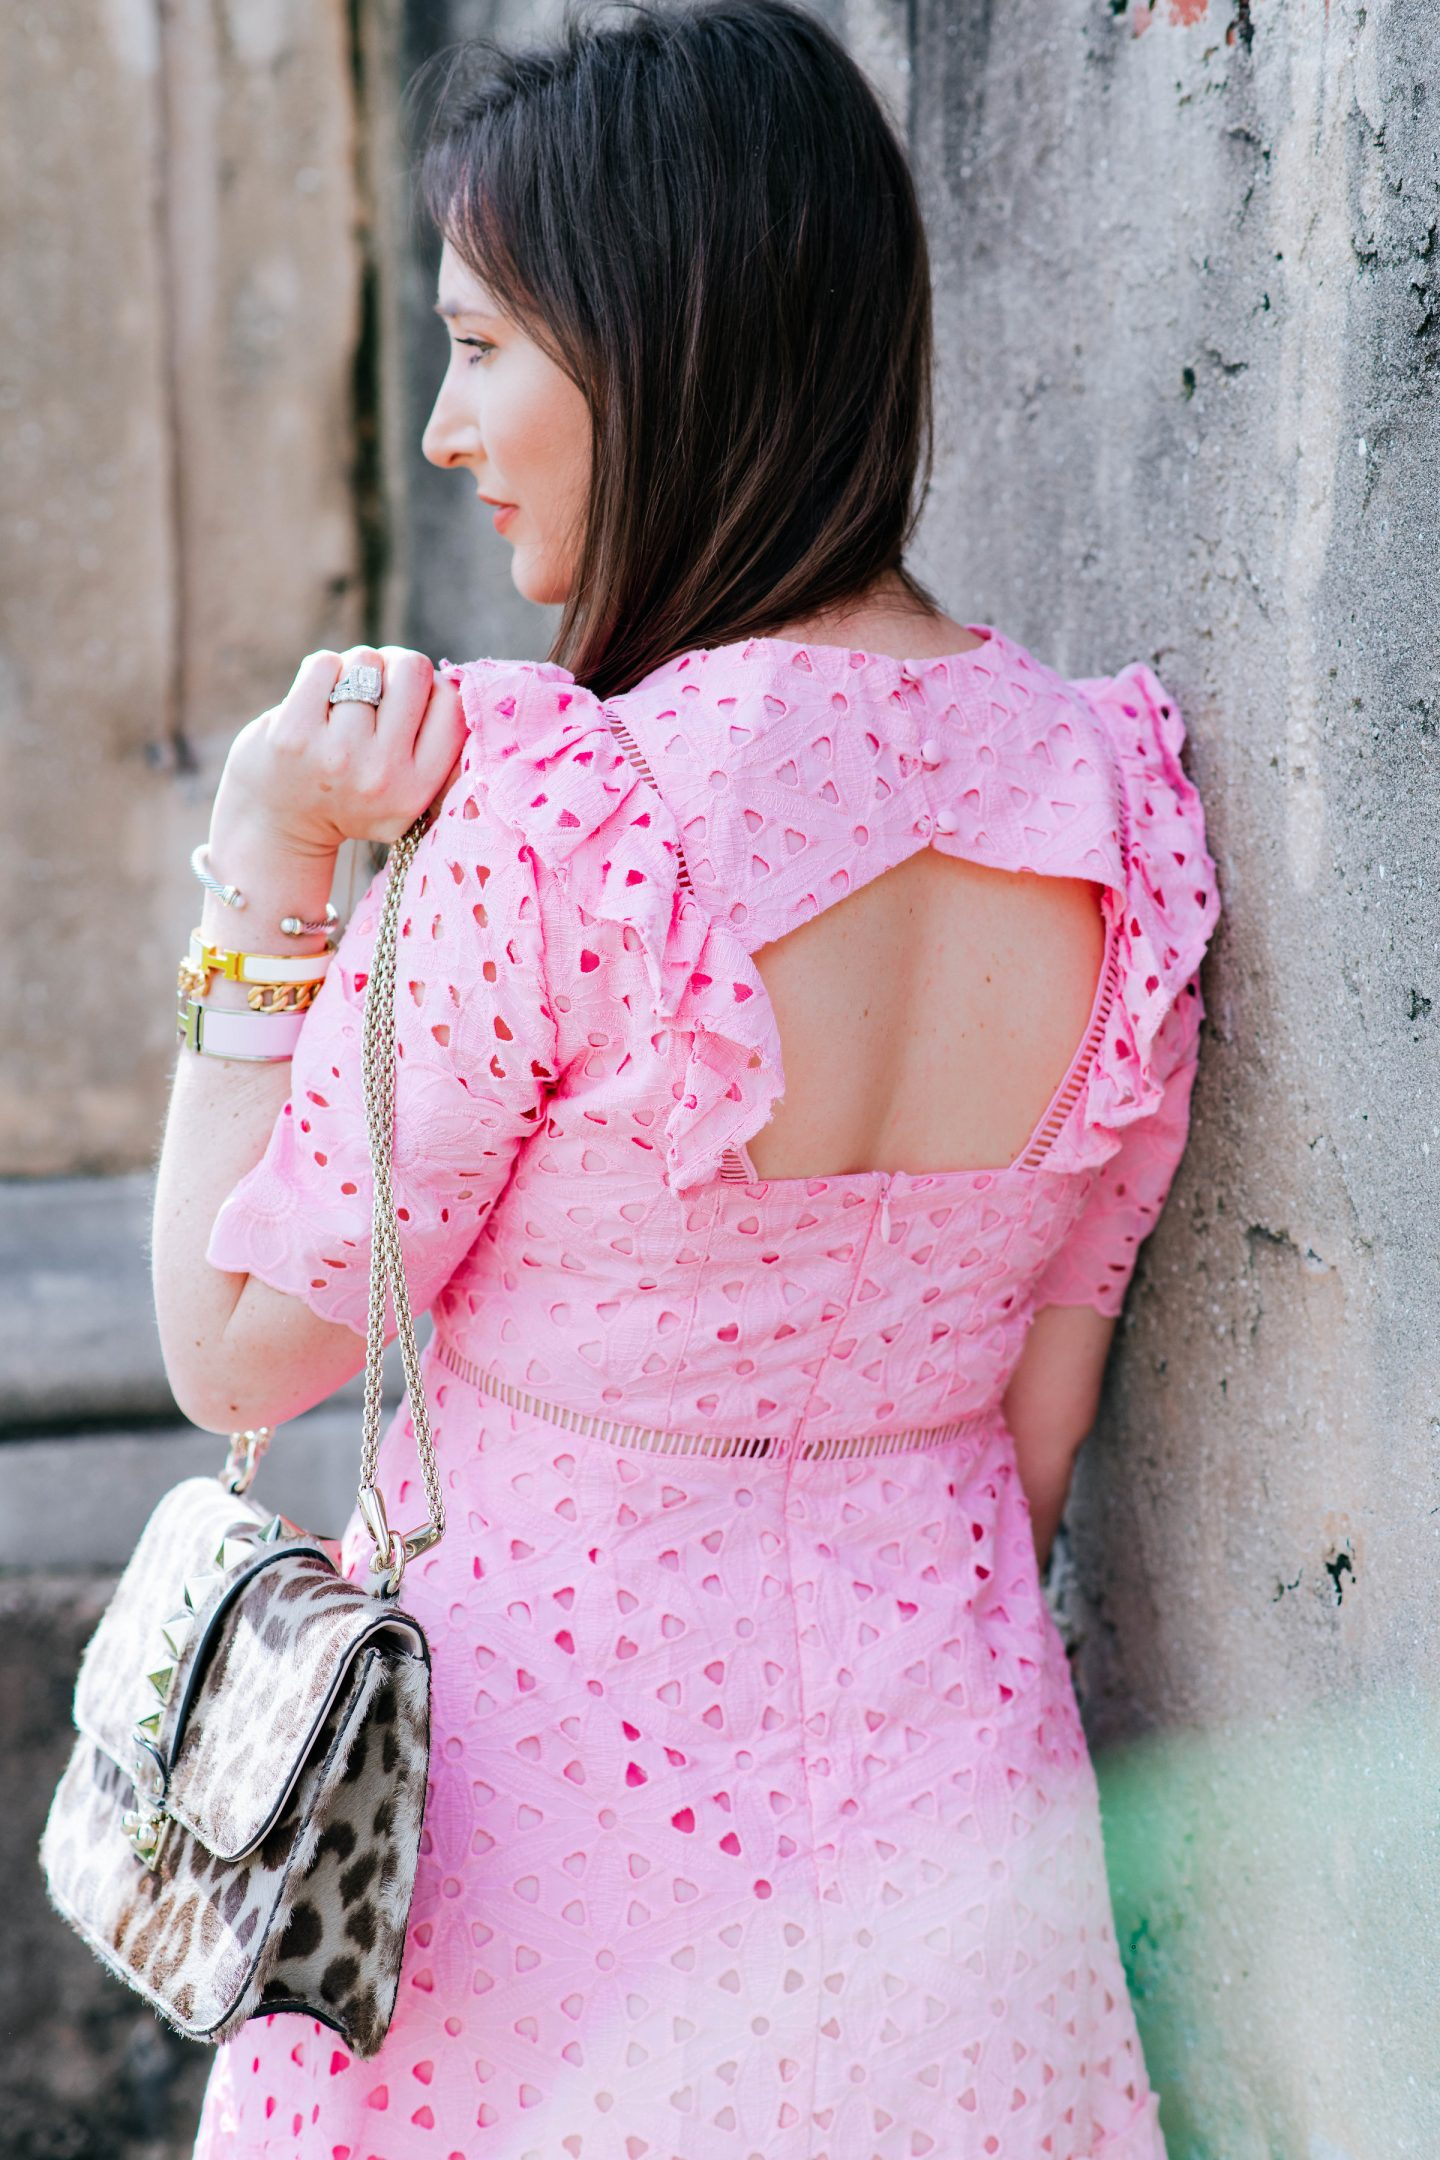 How to mix high and low fashion, gift card giveaway, revolve clothing, asos pink dress, valentino glamlock bag, gucci marmont loafers, high and low fashion, how to style high and low fashion, chanel liquid lipstick, pink eyelet dress, affordable dresses, high end accessories, how to mix high and low end fashion